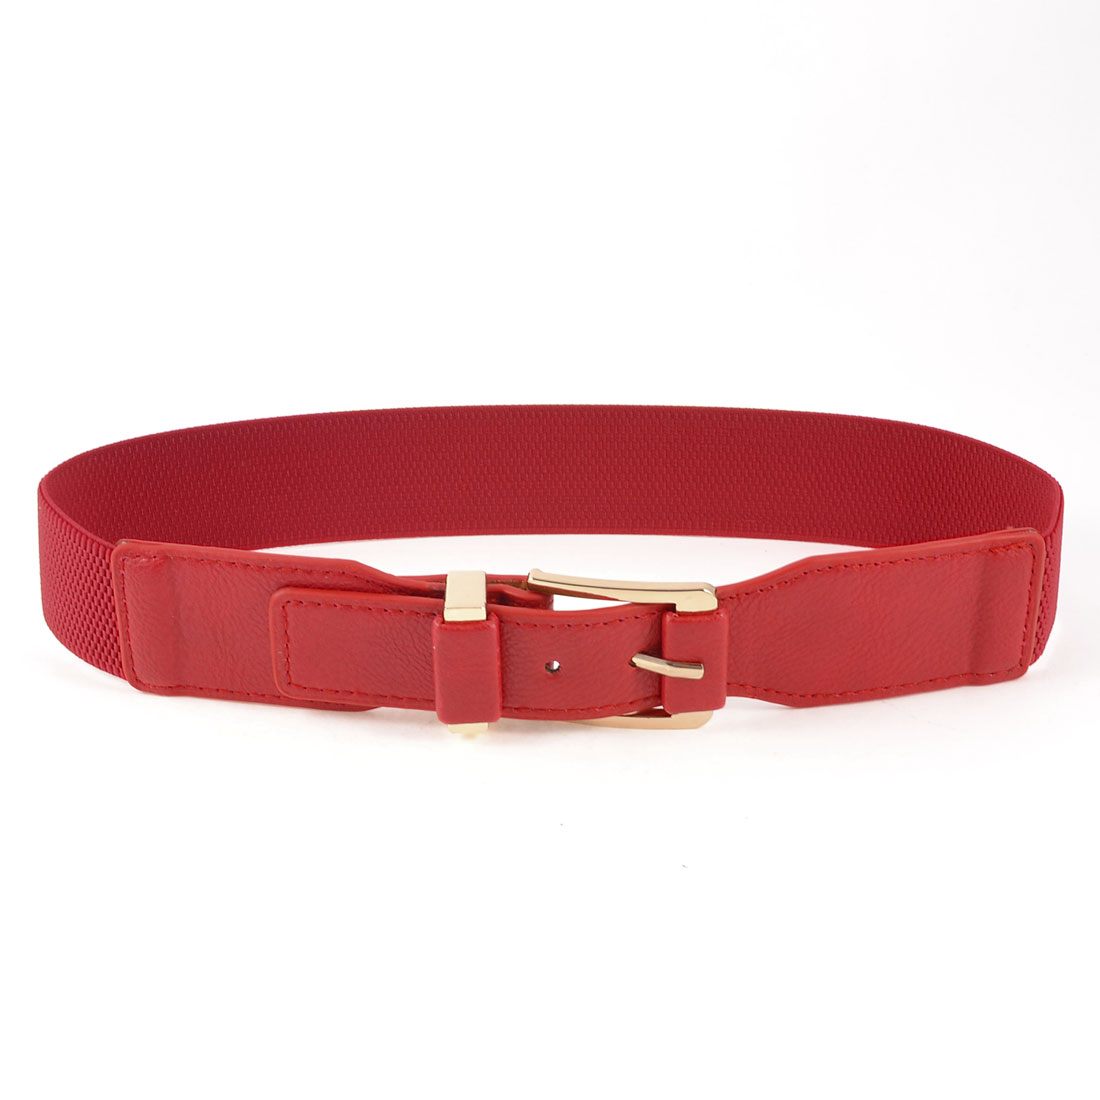 Faux Leather 4cm Width Single Prong Buckle Stretchy Cinch Belt Band for Lady